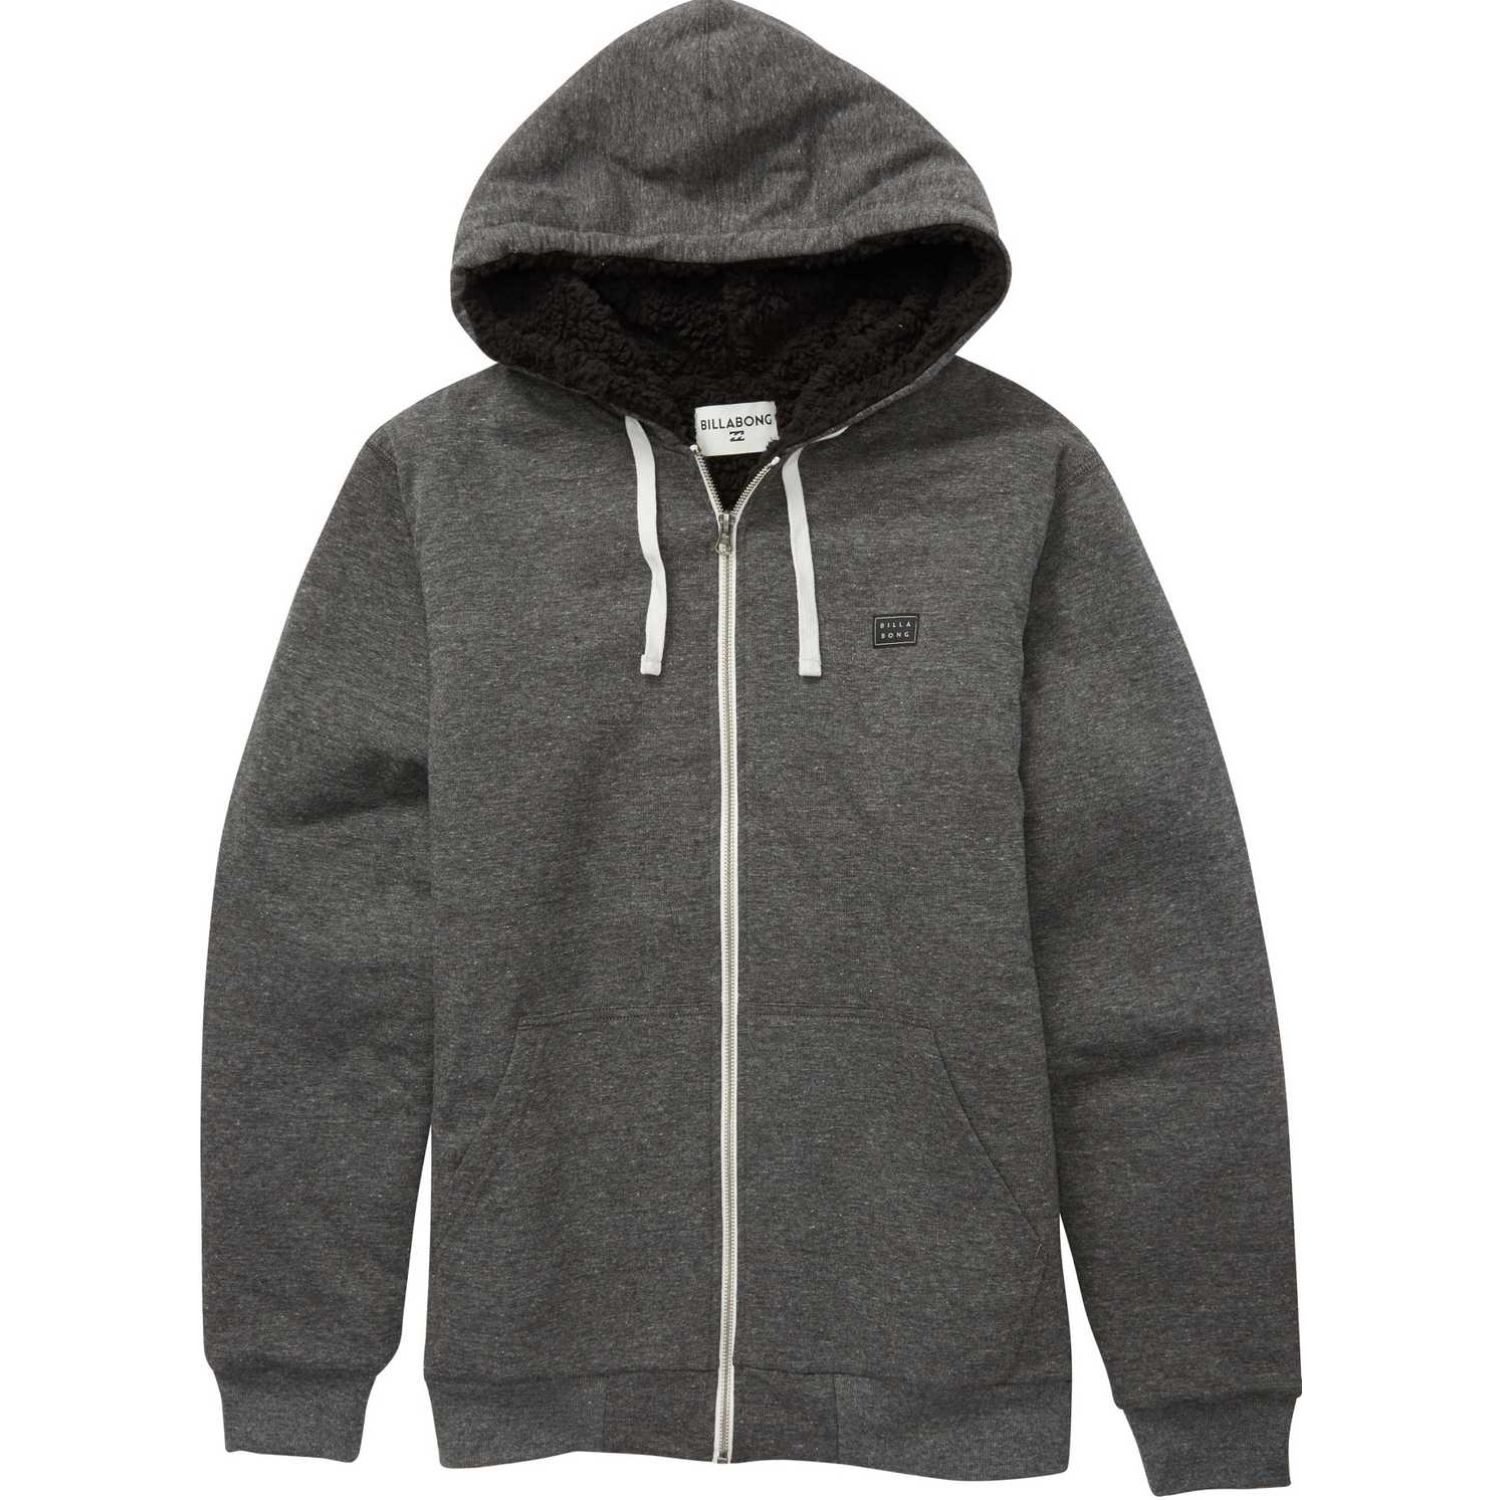 Billabong ALL DAY SHERPA ZI II Negro Hoodies y Sweaters Fashion